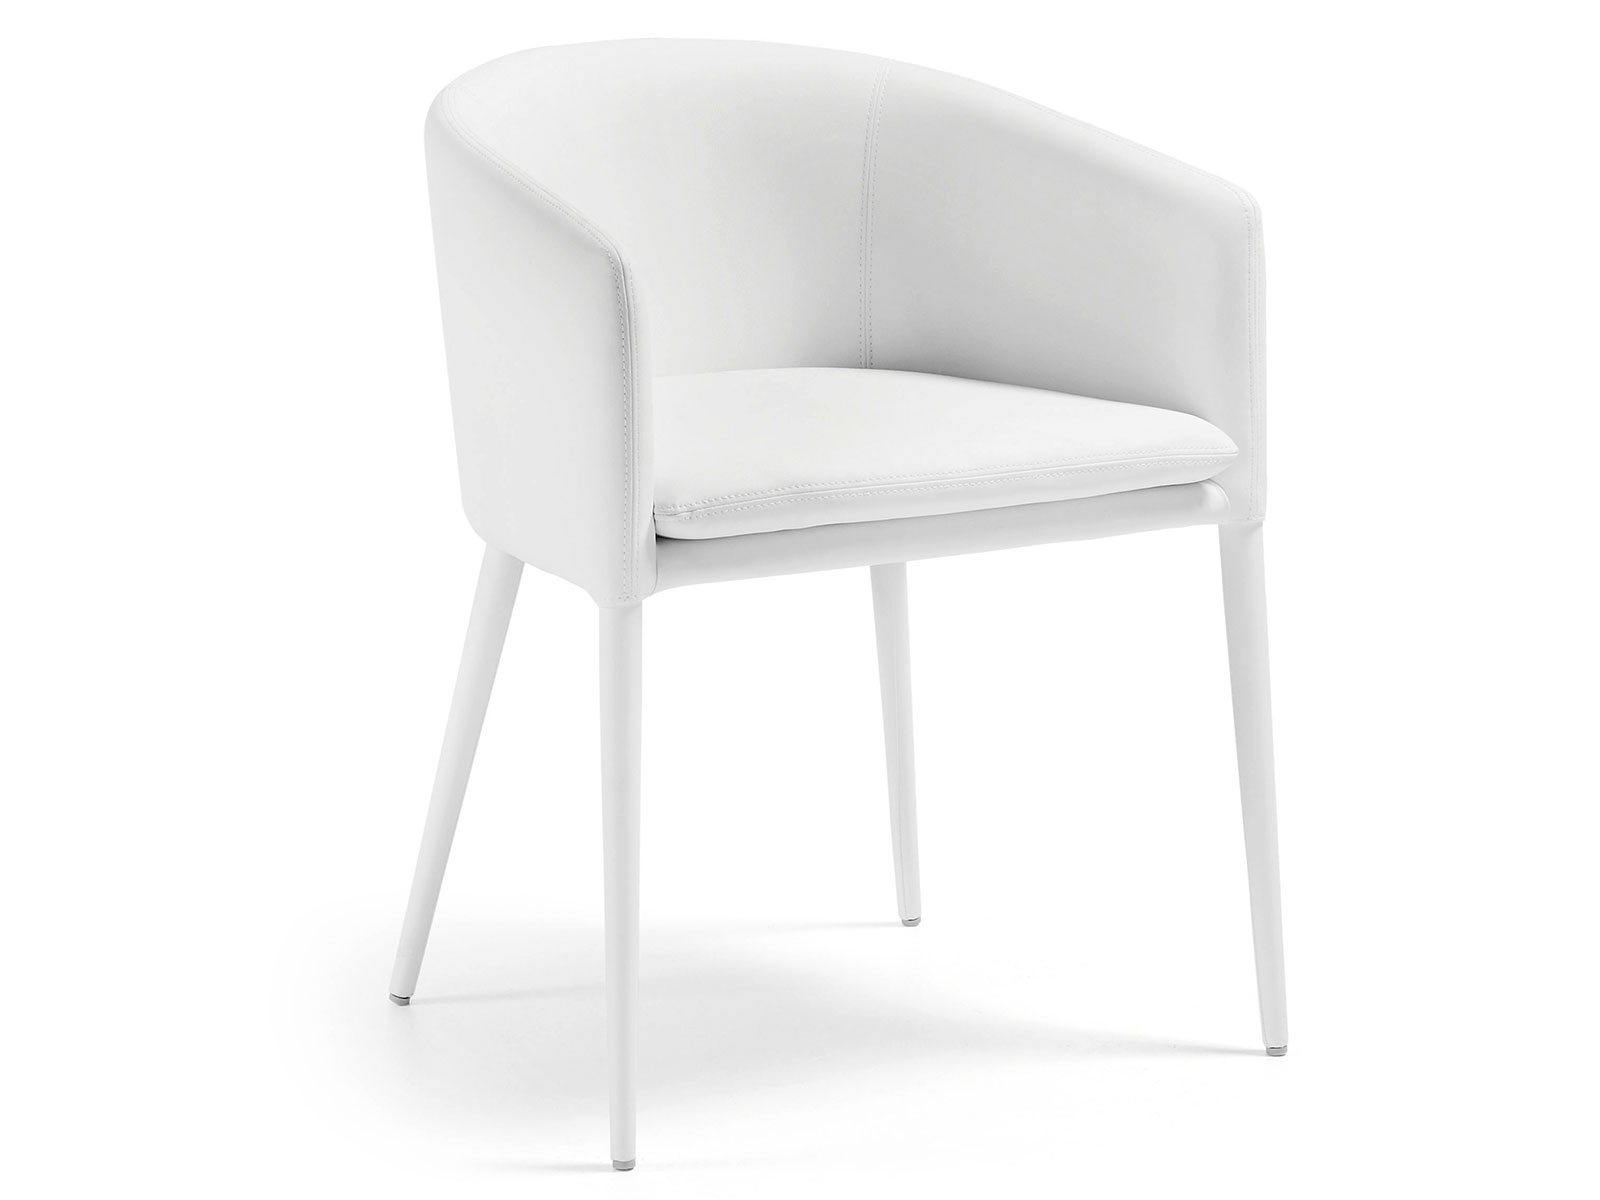 Silla harmon color blanco casam a design sillas de for Sillas de diseno blancas